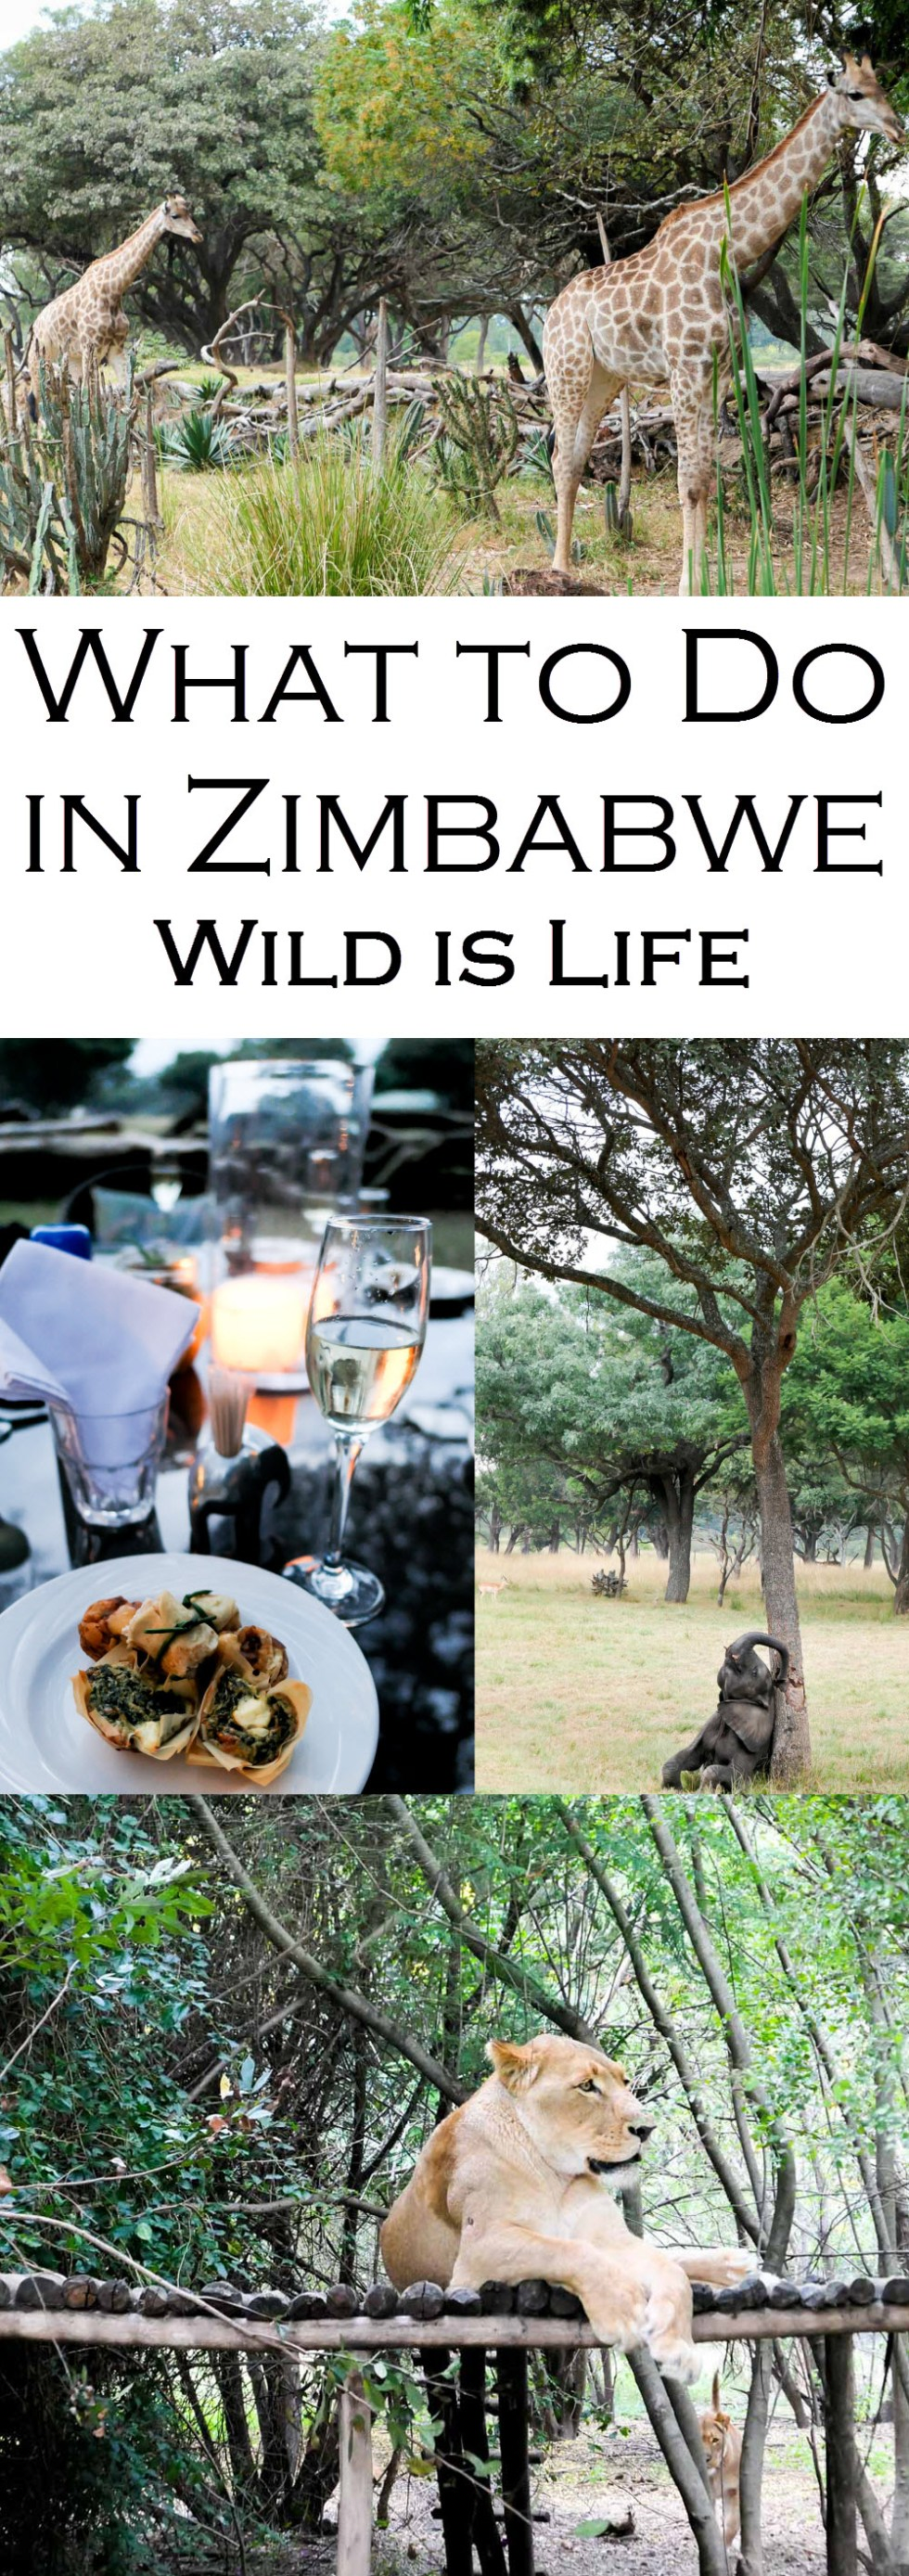 Wondering What to do in Harare, Zimbabwe? Visit Wild is Life an animal conservancy working to return injured animals to the wild. Enjoy feeding giraffes, baby elephants, and afternoon tea and coffee. End the afternoon with champagne and canapes for sundowners! #safari #lpworldtravels #africa #zimbabwe #animals #zebras #giraffes #lions #elephants #travleguide #travelblog #travelblogger #traveltips #wanderlust